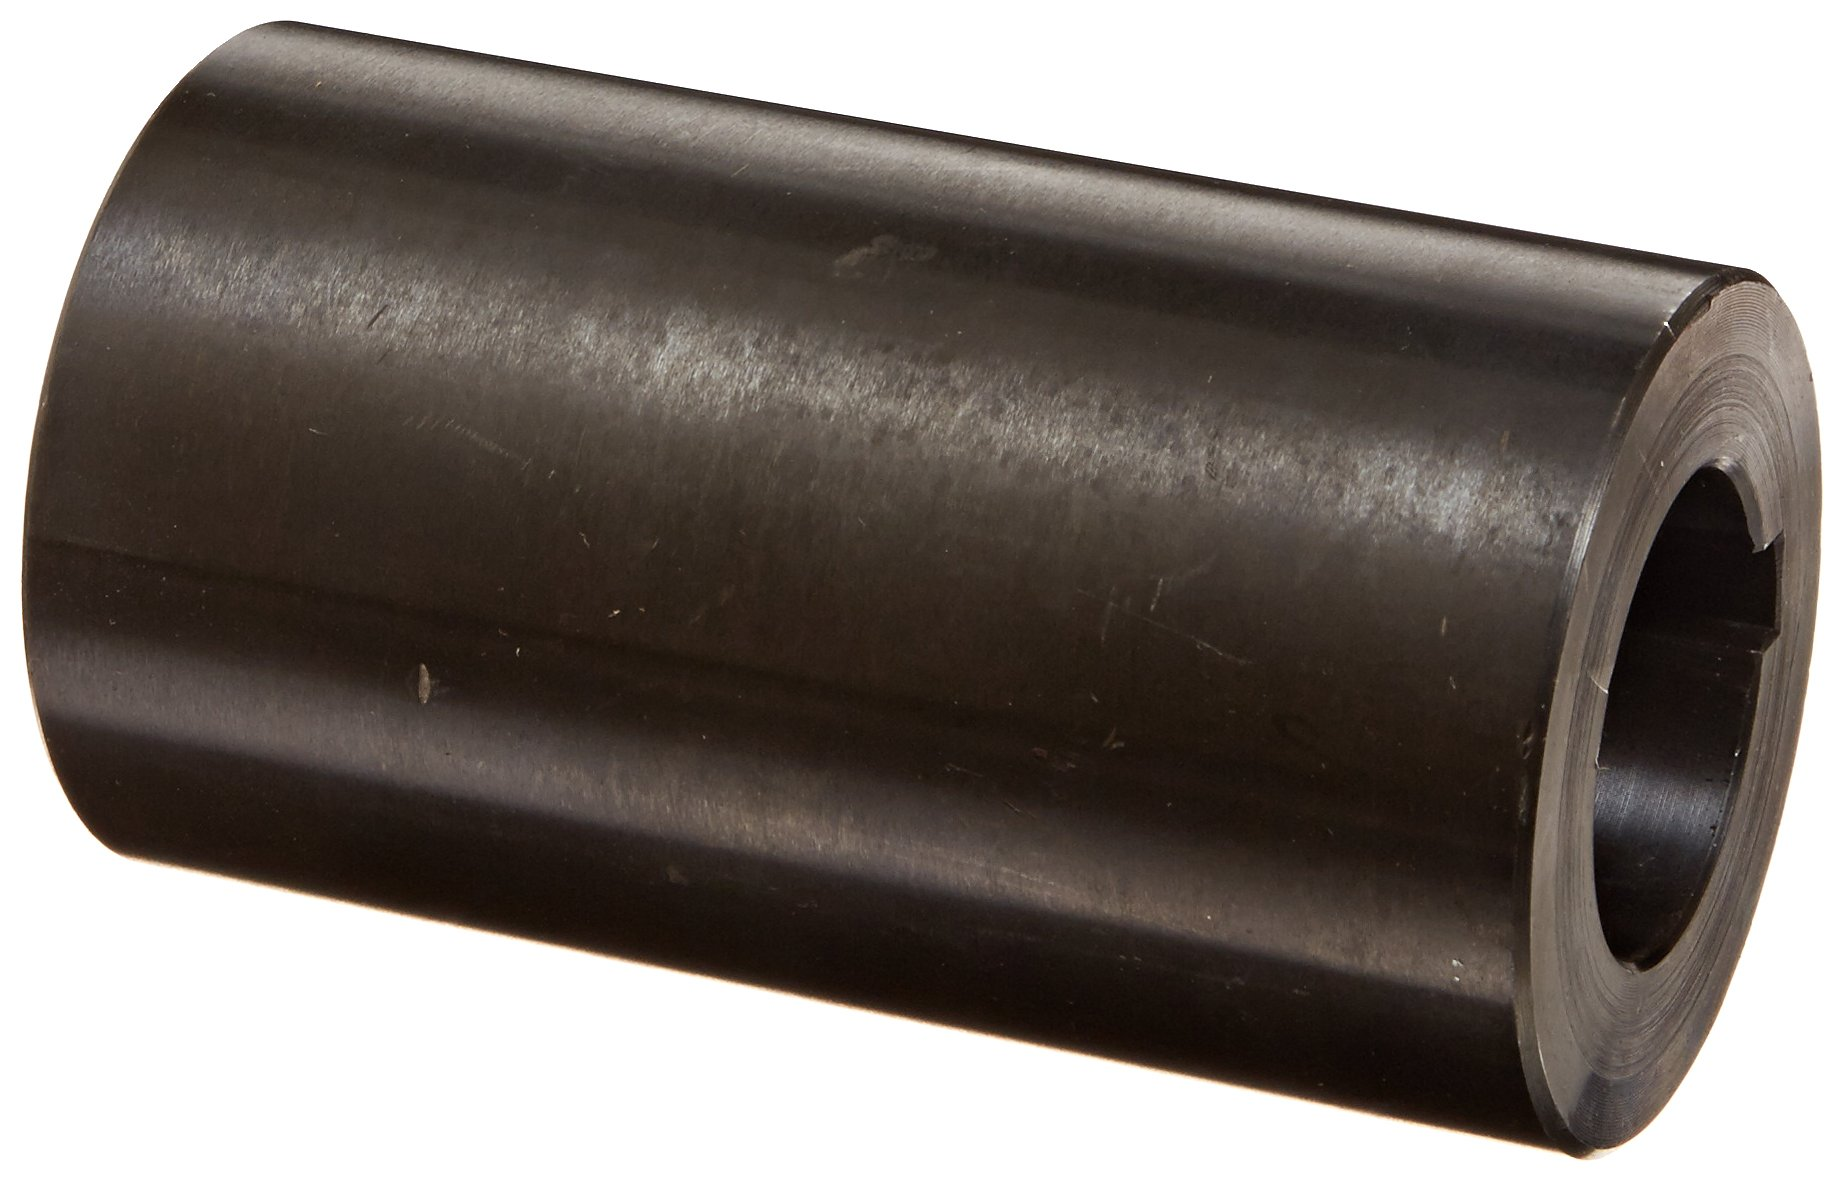 1//4-20 x 1//4 Set Screw 1 inch OD Climax Part RC-050-4H @ 90 Mild Steel 1//2 inch bore 1 1//2 inch Length Black Oxide Plating Rigid Coupling